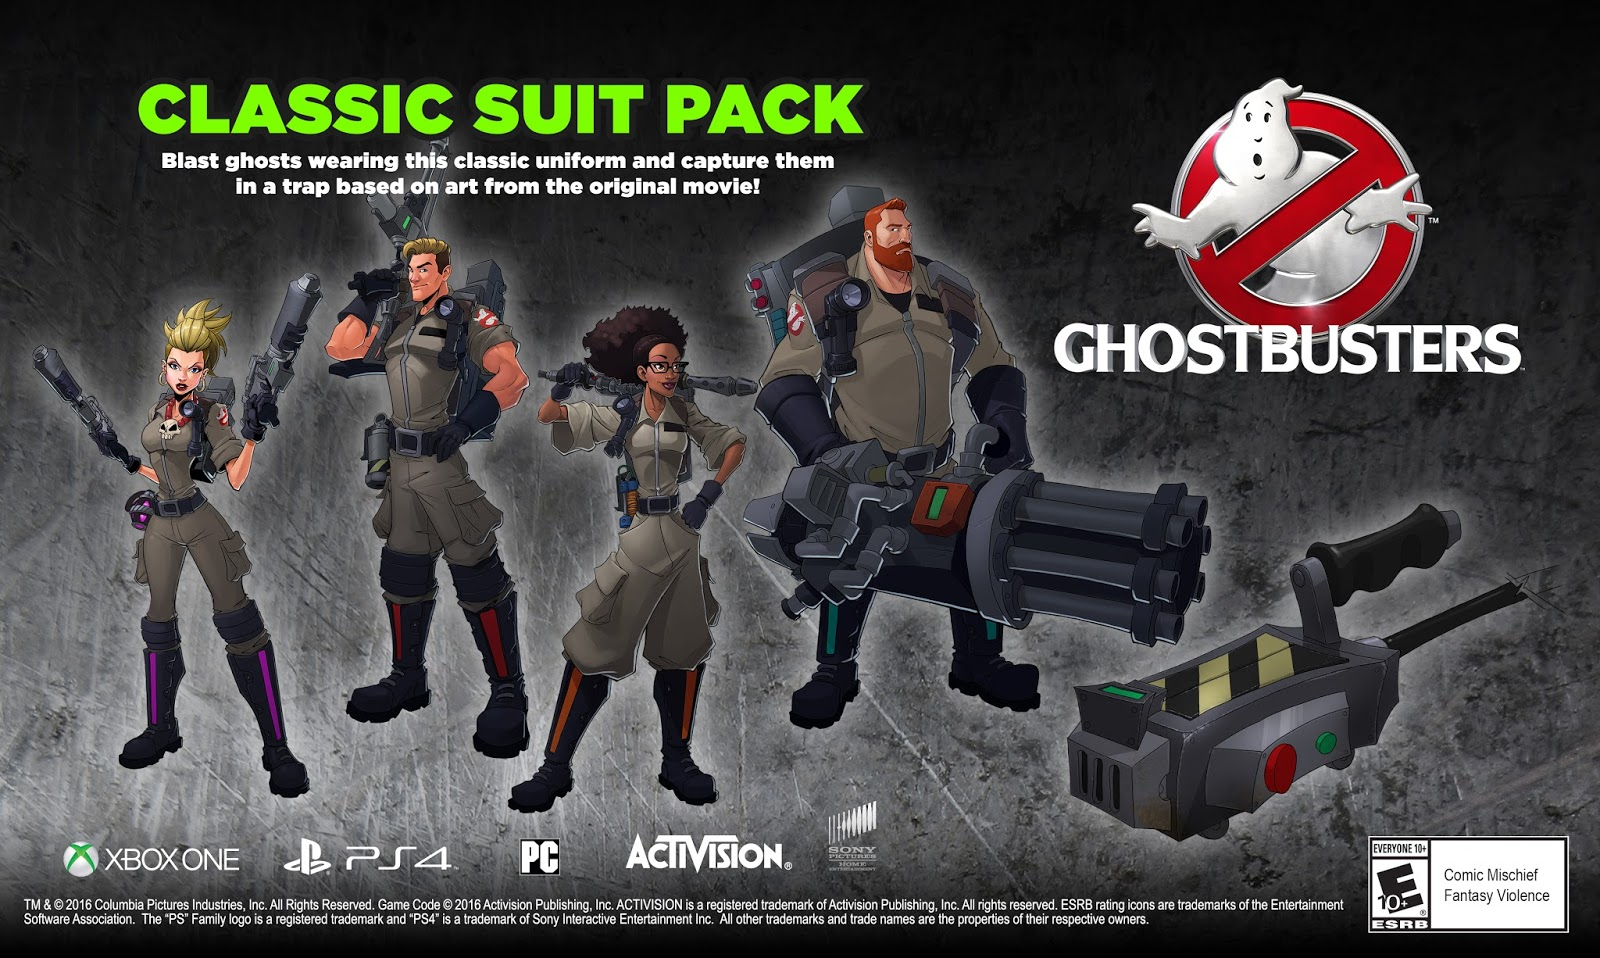 The Ghostbusters Ultimate Bundle Coming To PS4 On July 12